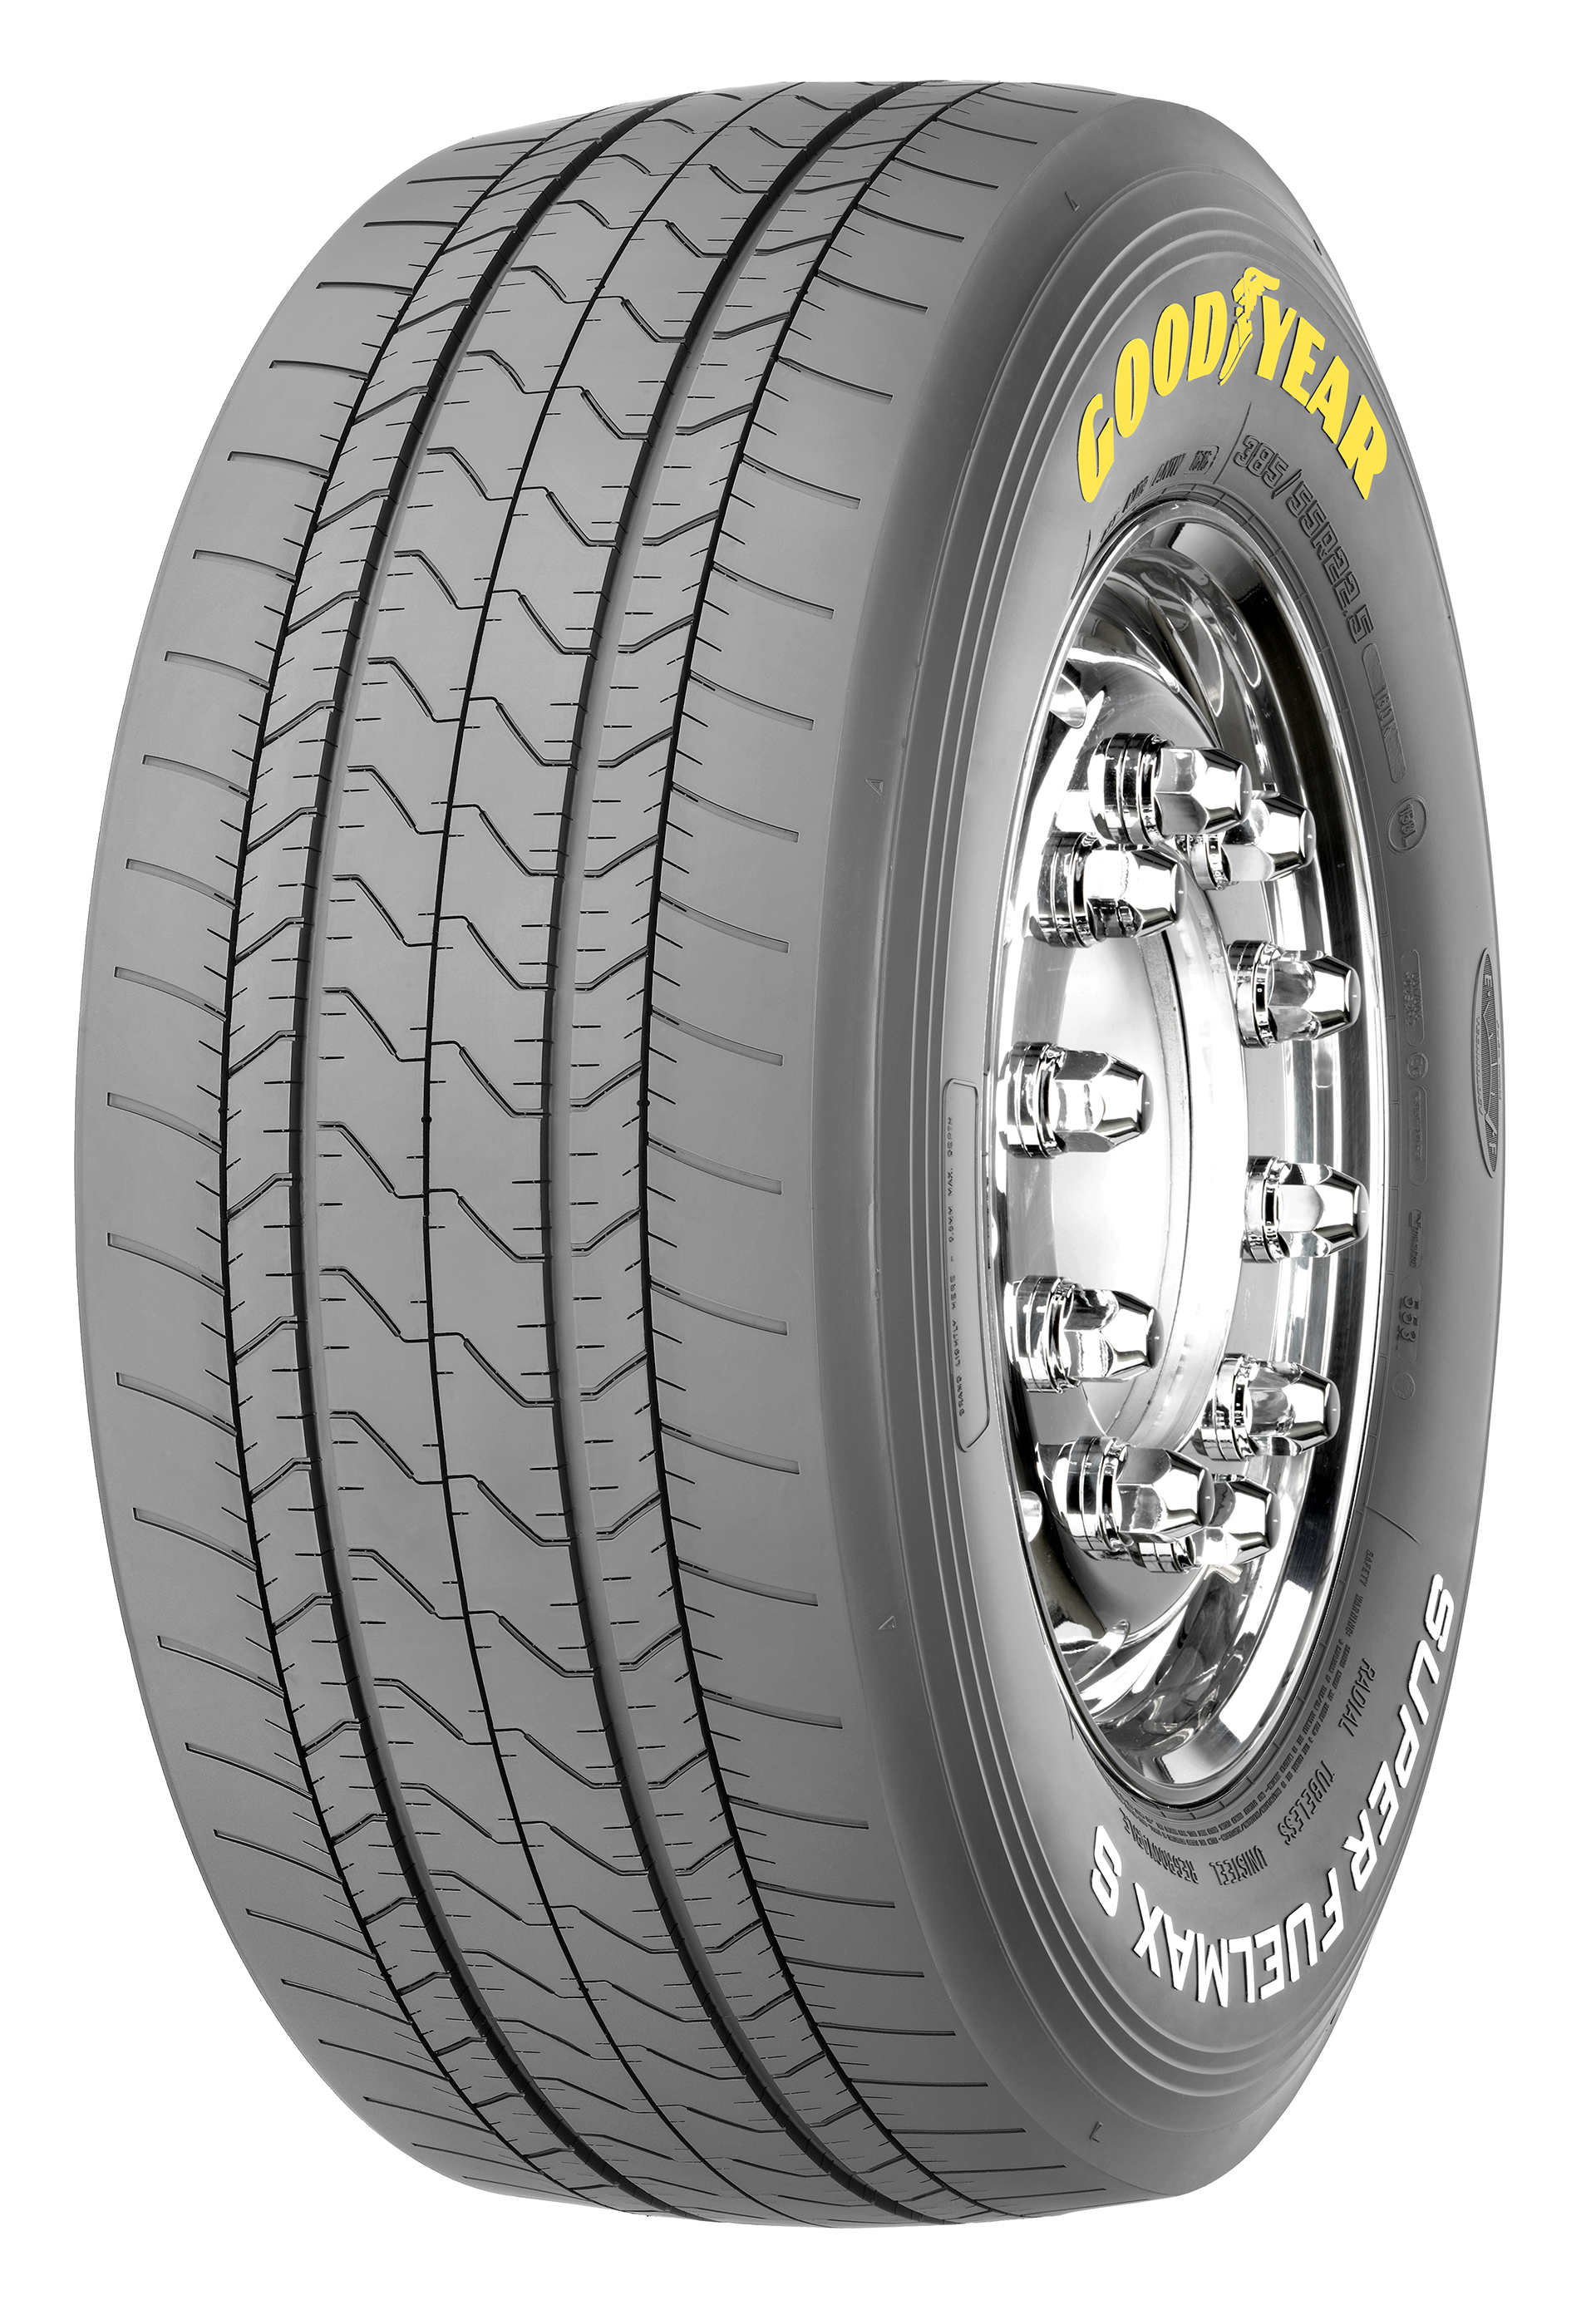 goodyear-super-fuelmax-s_385-55r22-5_view1_gy-on-top_lr